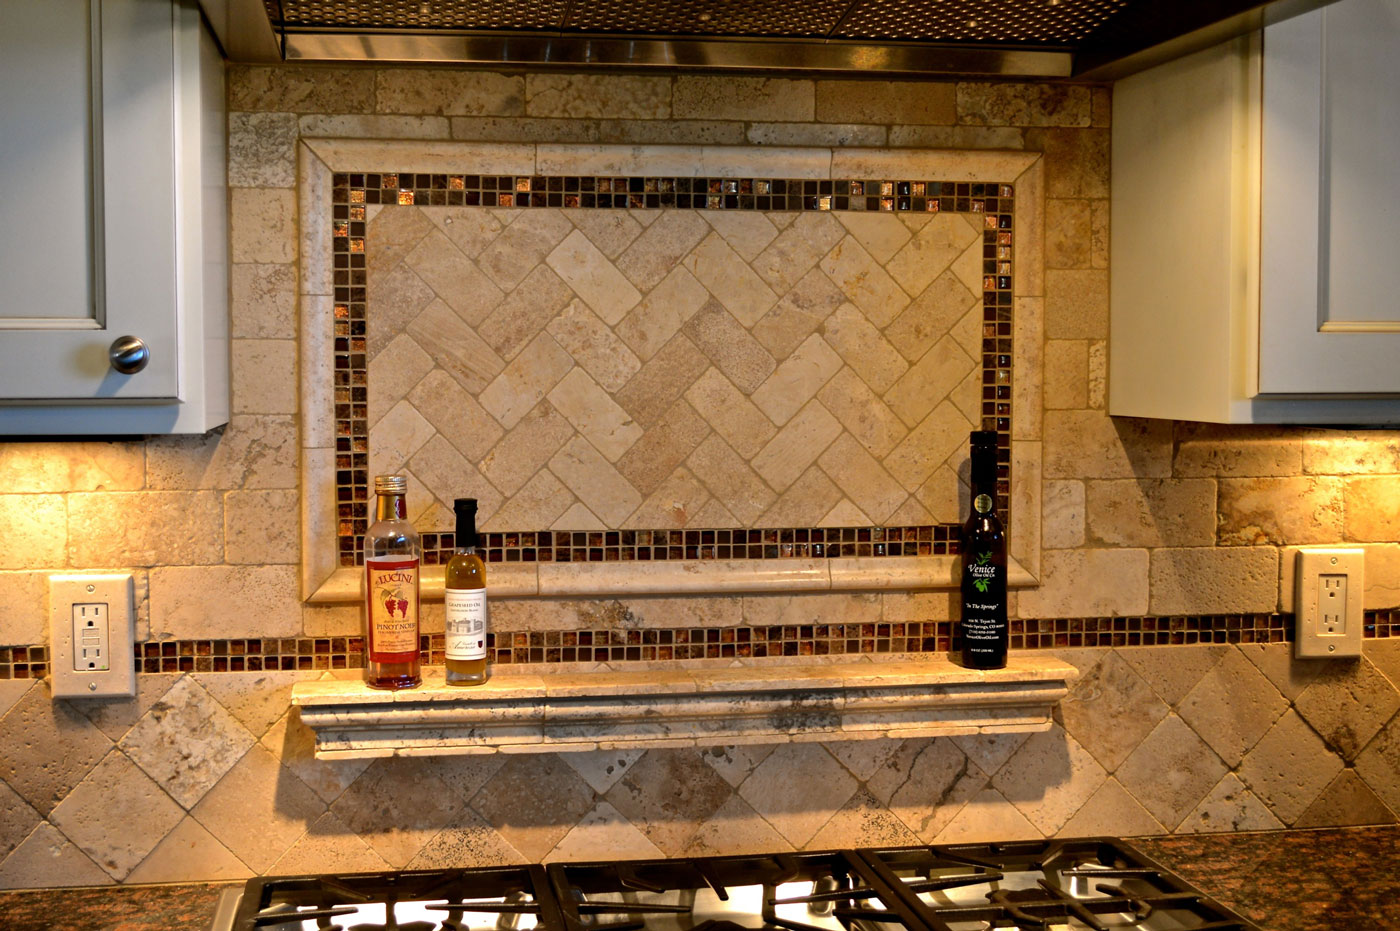 Colorado Springs Interior Design Custom Backsplasjh Tile Kitchen